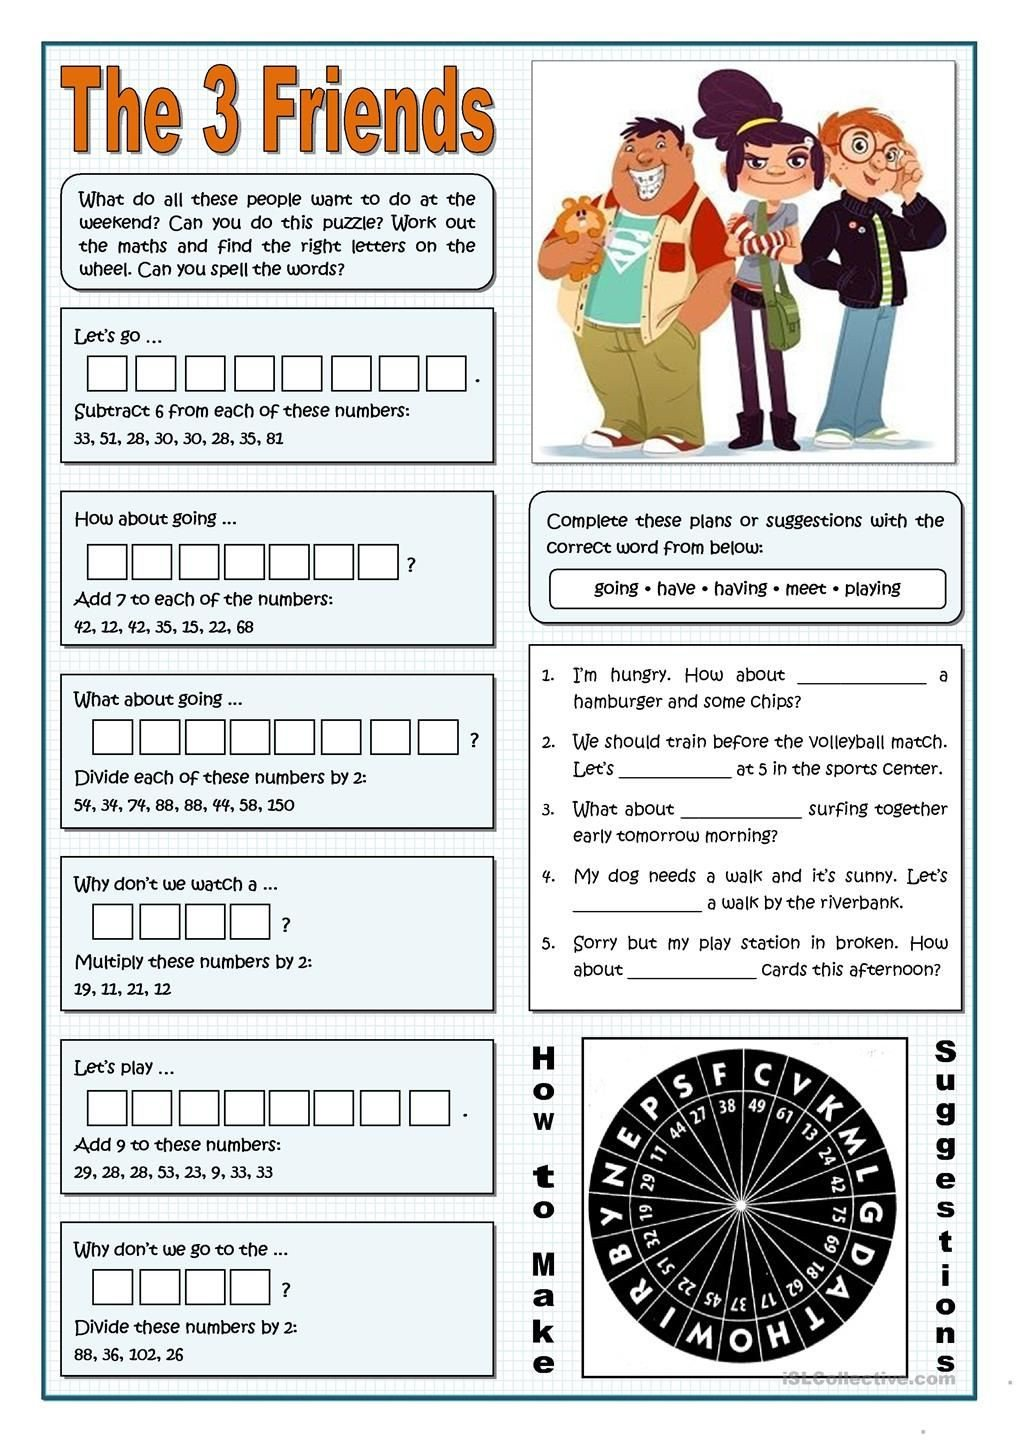 How to Make Friends Worksheet the Three Friends Making Suggestions